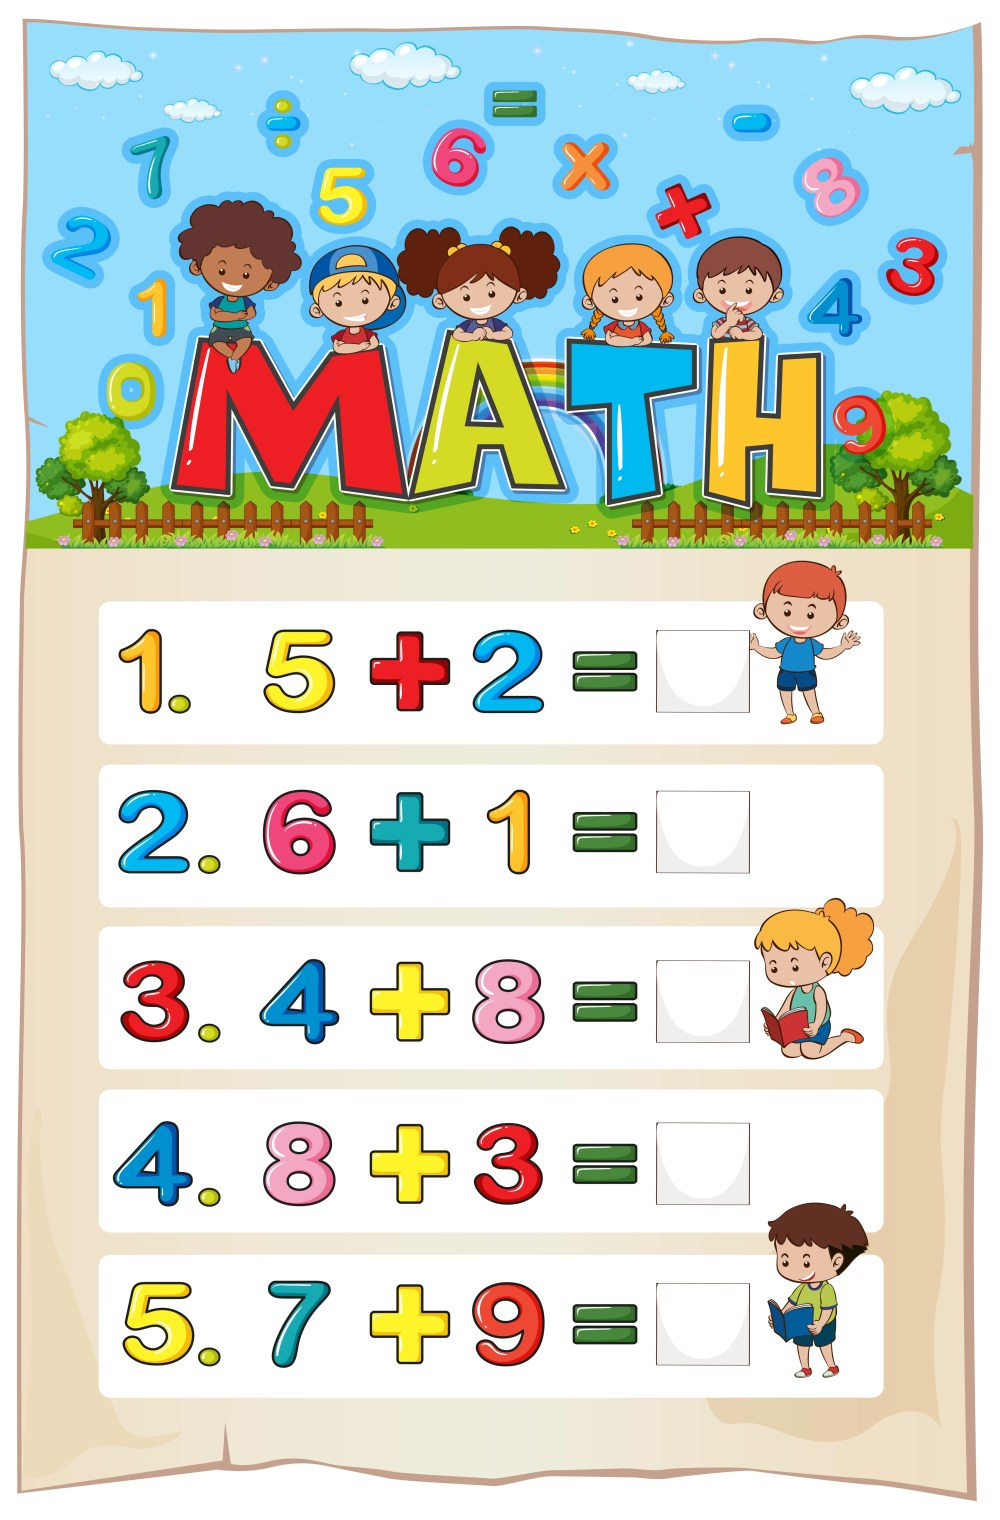 medium resolution of Addition worksheet template for young children - Download Free Vectors